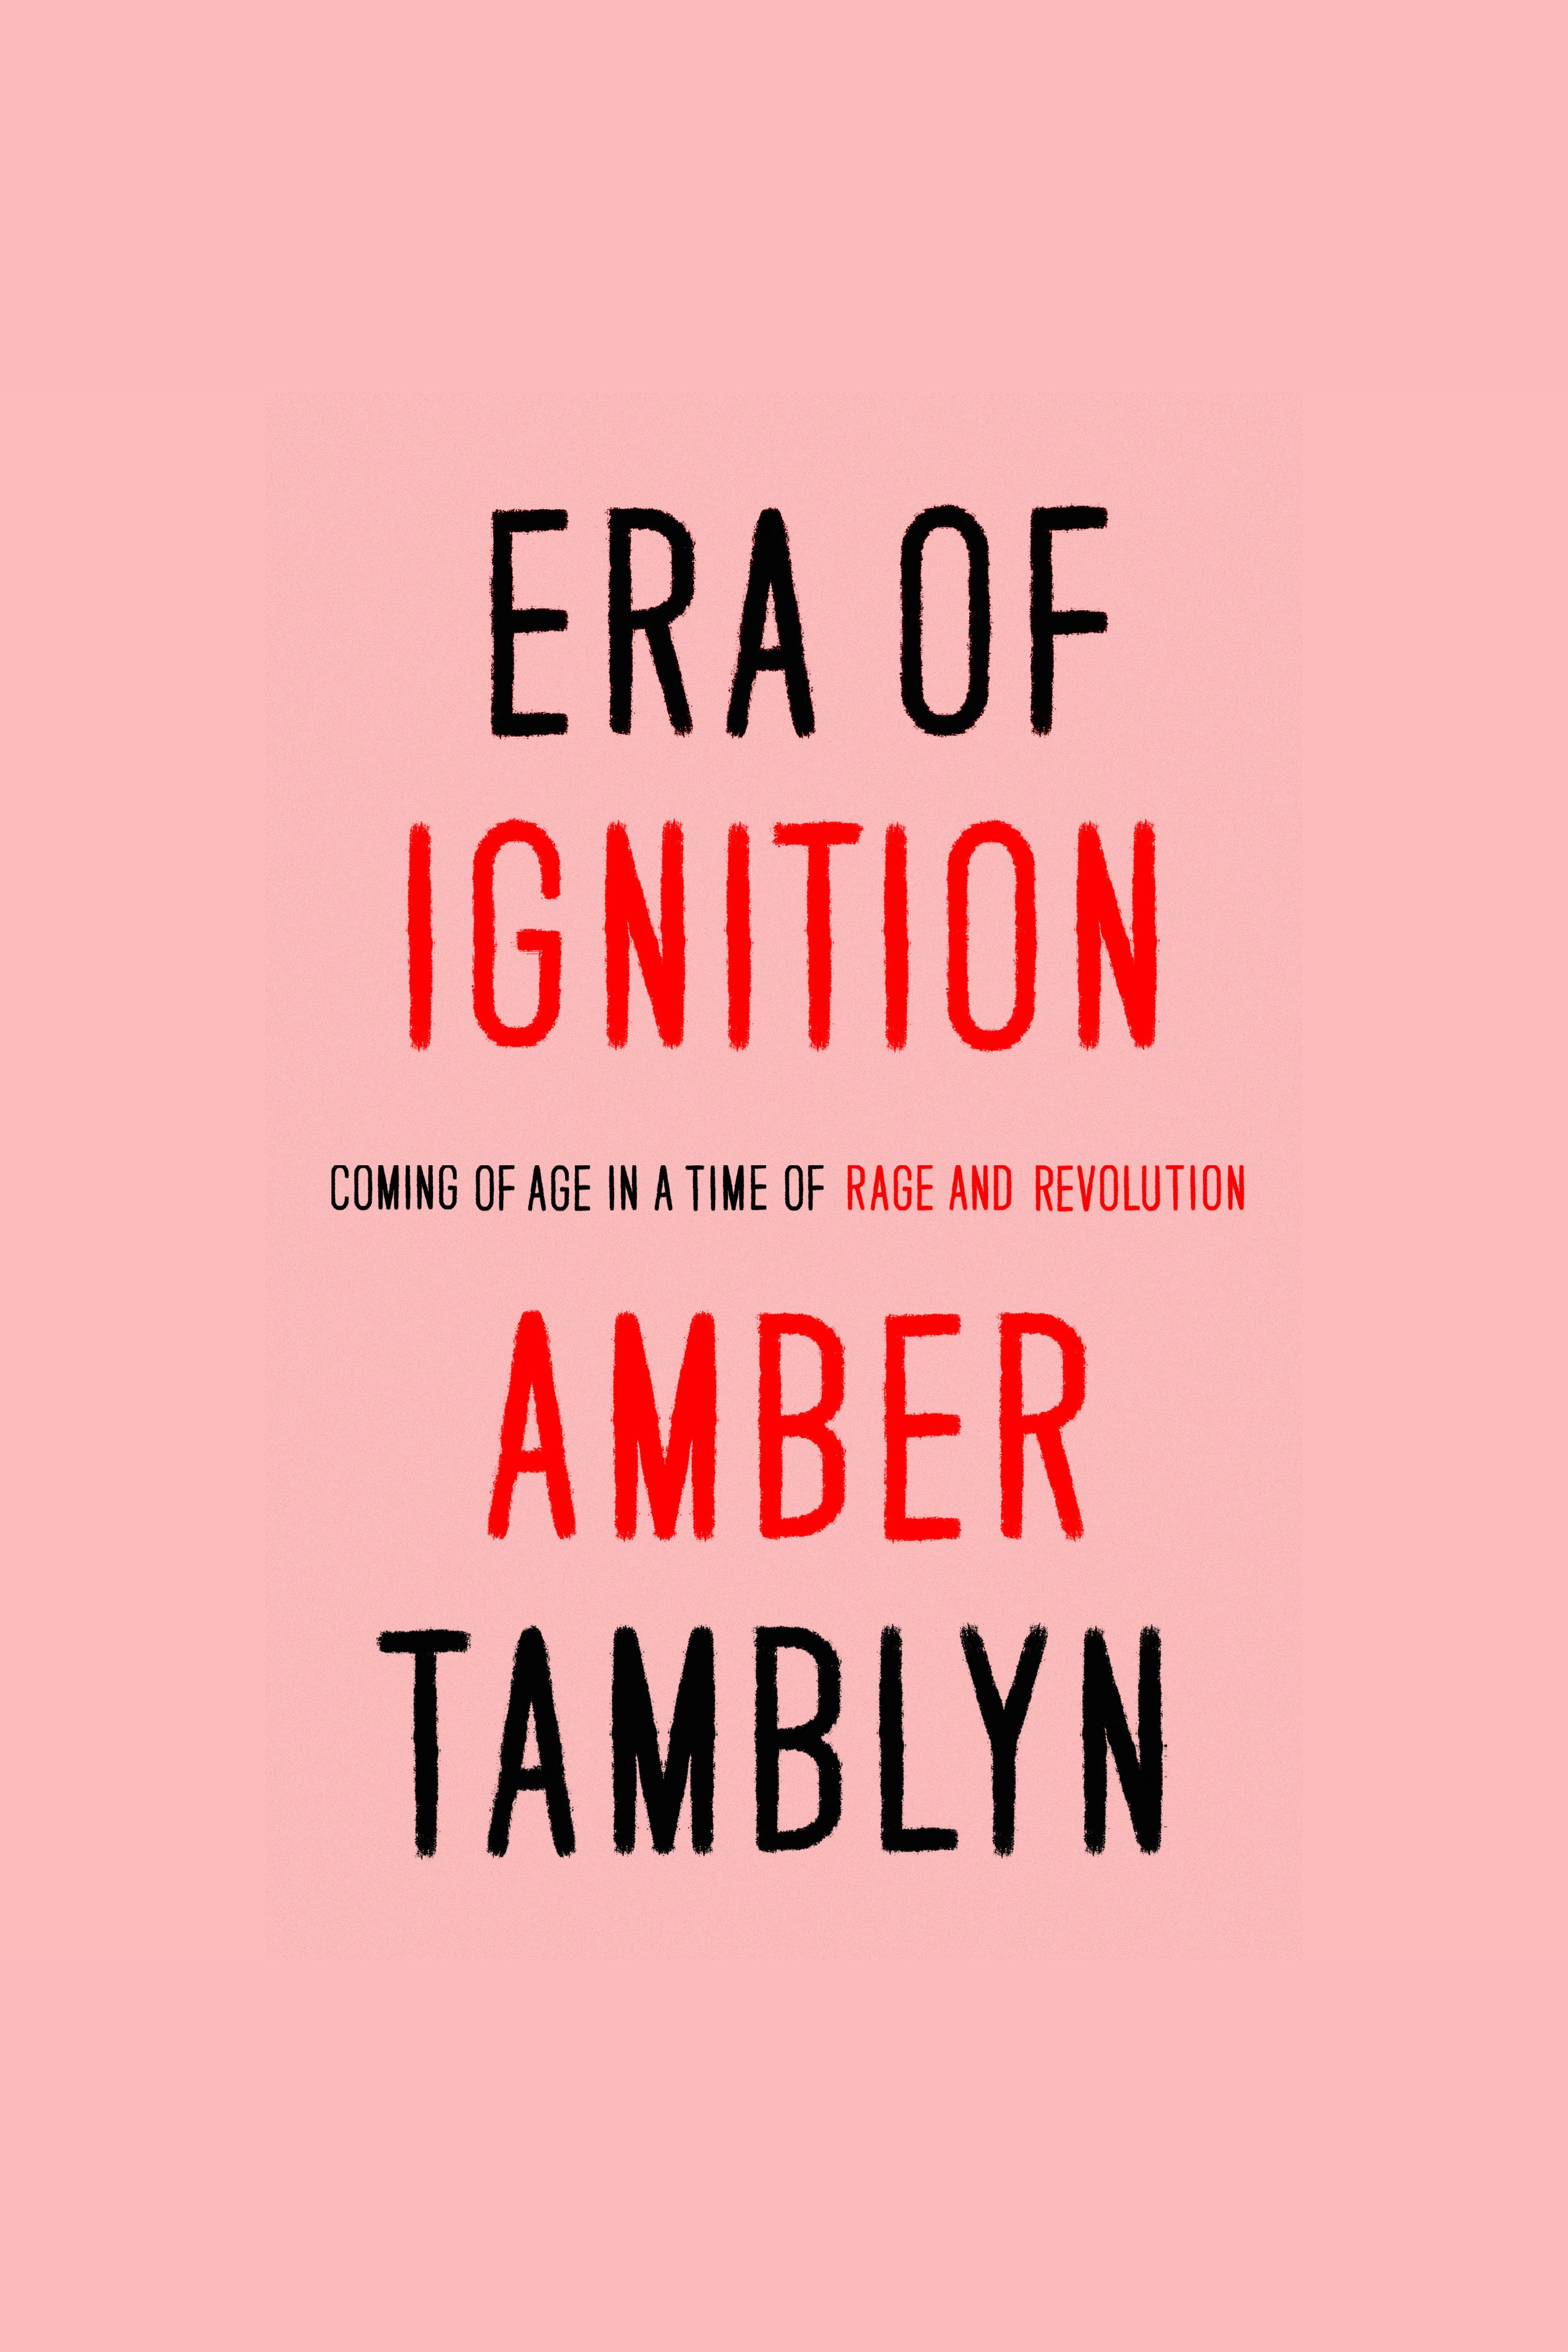 Era of Ignition Coming of Age in a Time of Rage and Revolution